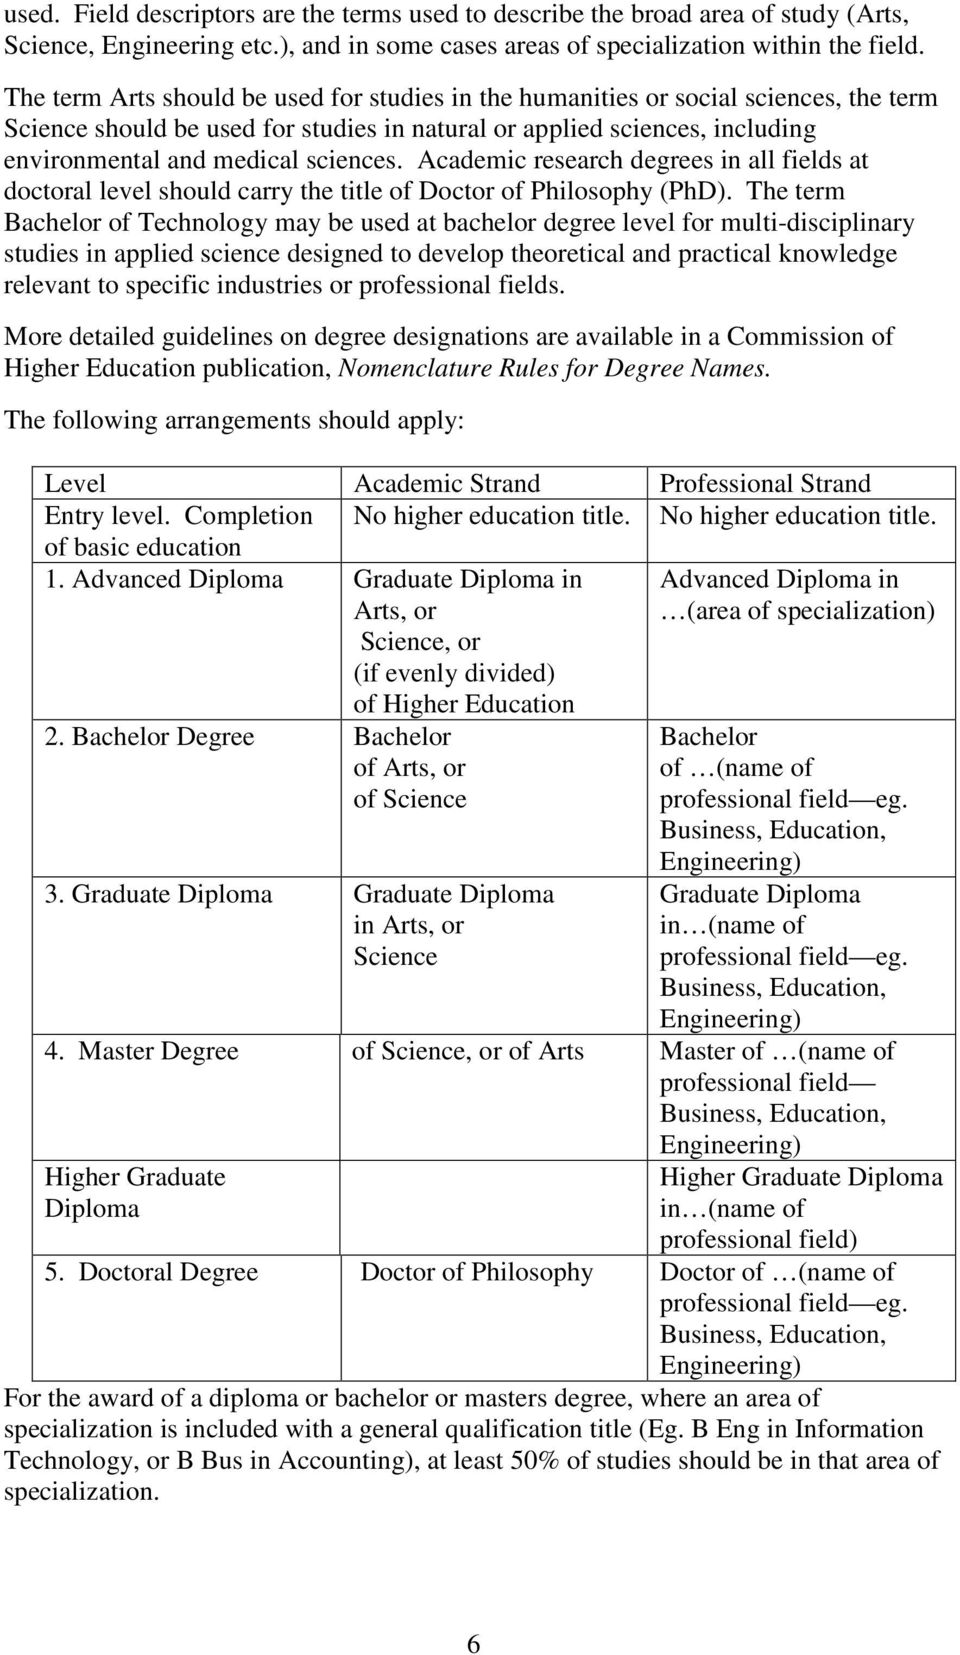 Academic research degrees in all fields at doctoral level should carry the title of Doctor of Philosophy (PhD).